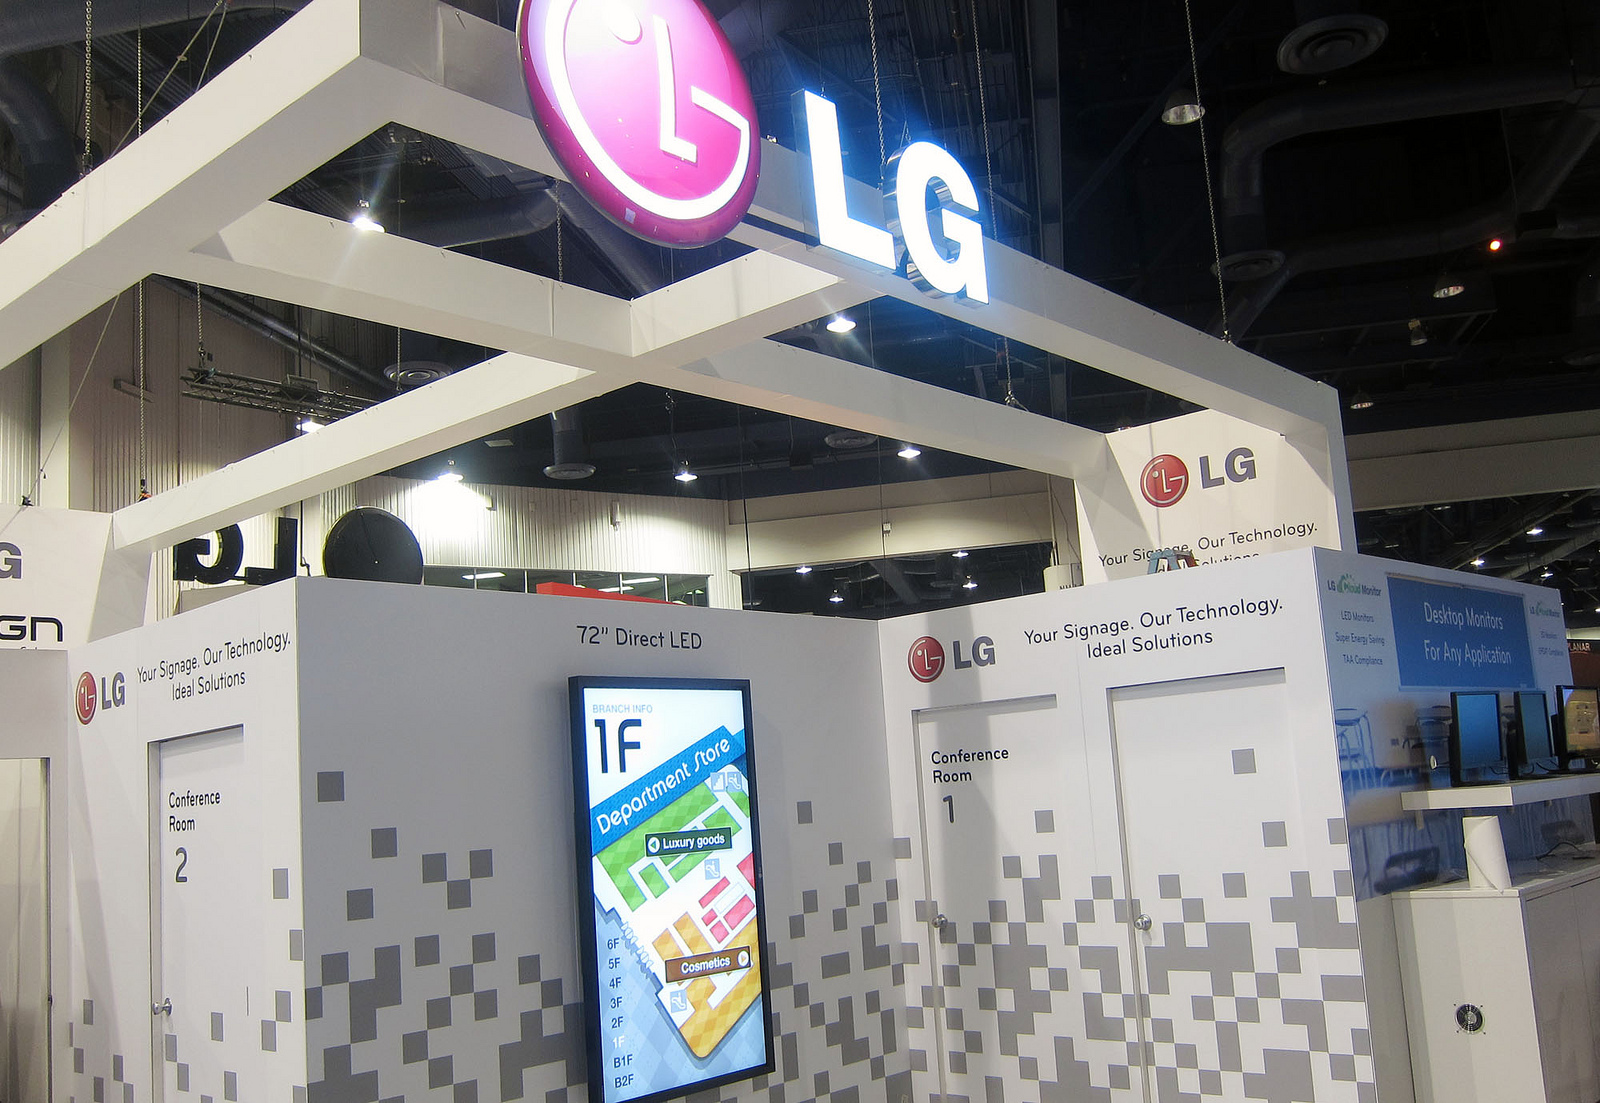 Digital signage in an exhibition setting